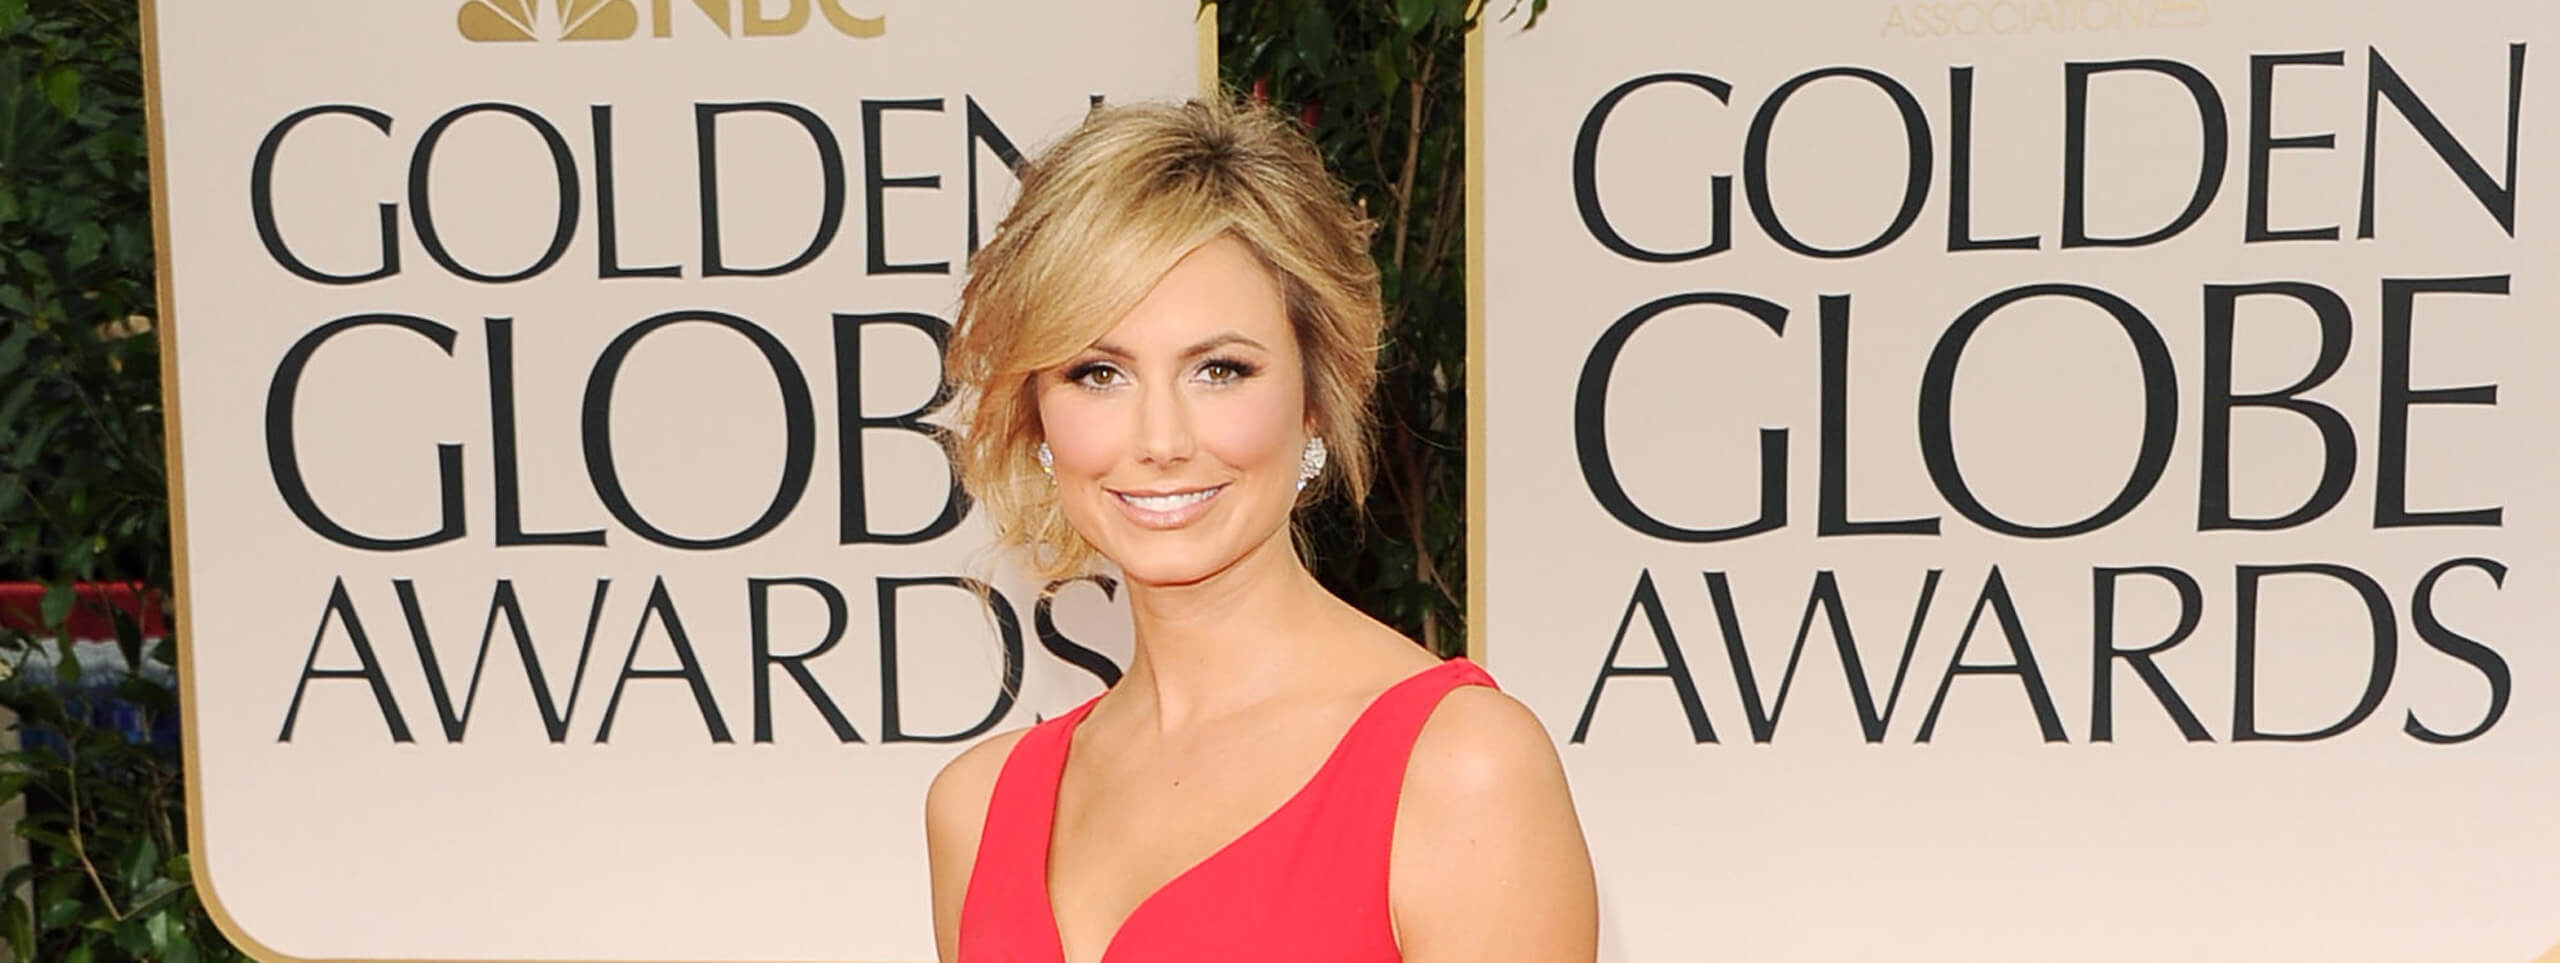 Stacey Keibler capelli raccolti Golden Globes 2011